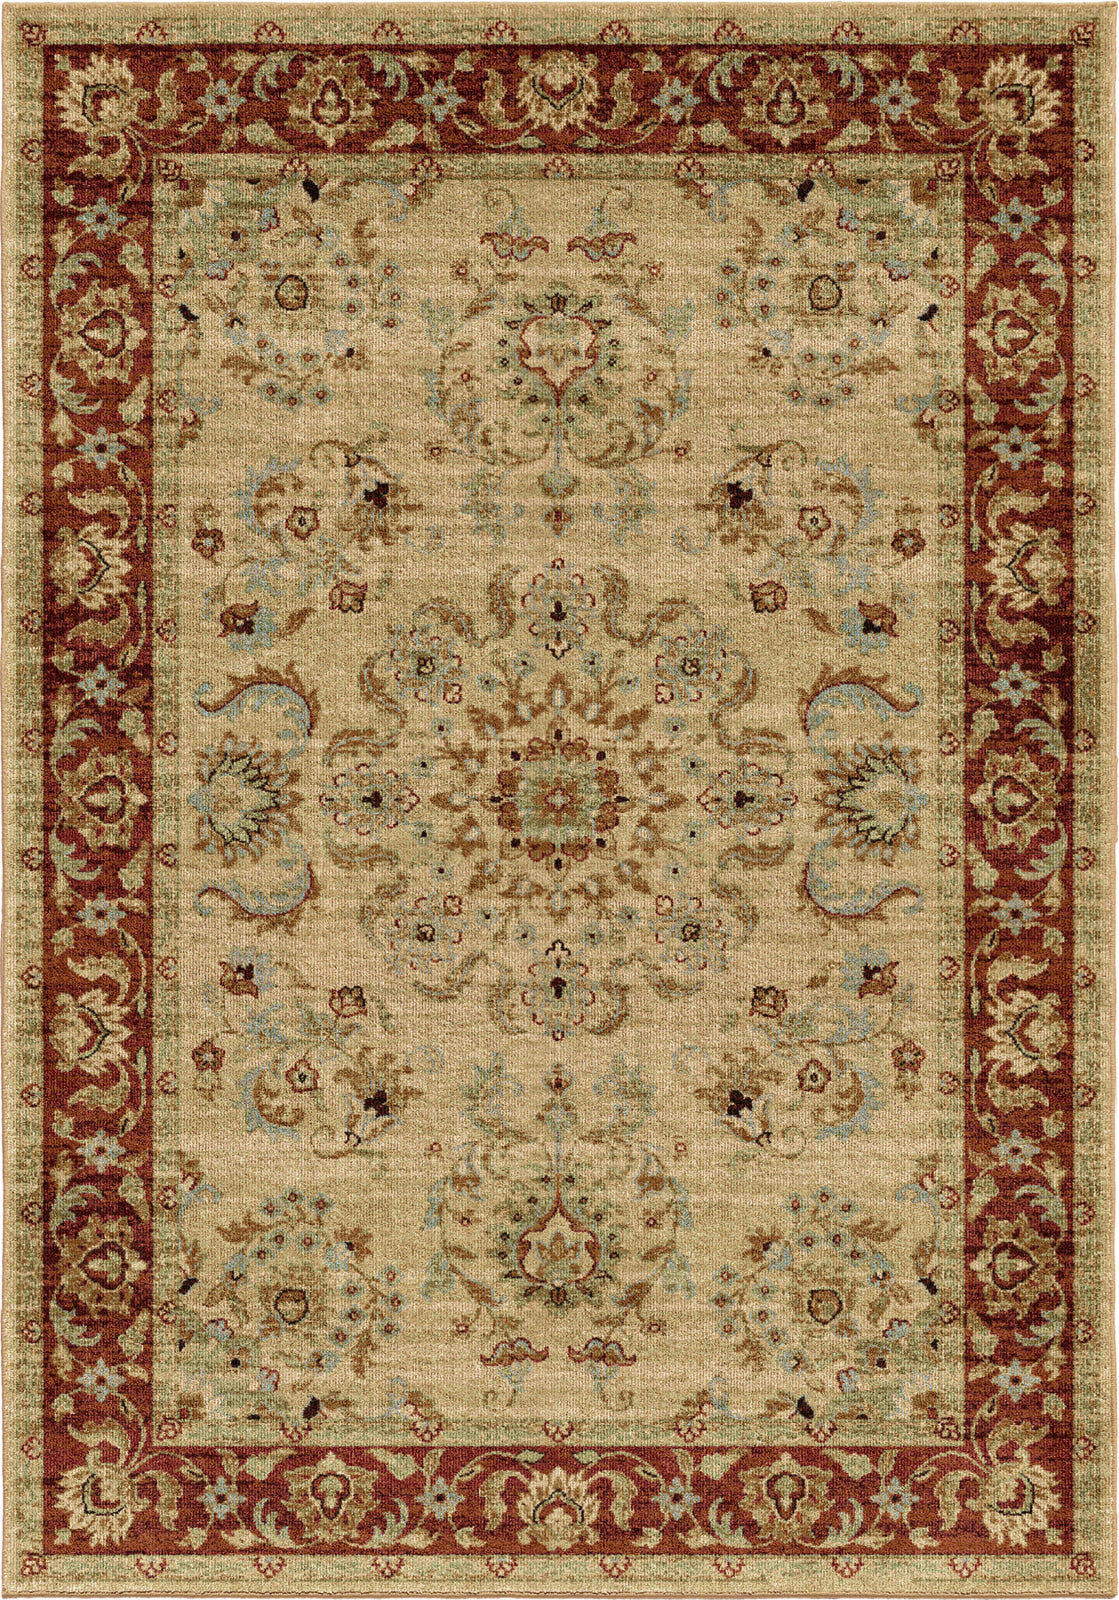 Orian Rugs Aria Promenade Camel Area Rug by Palmetto Living main image